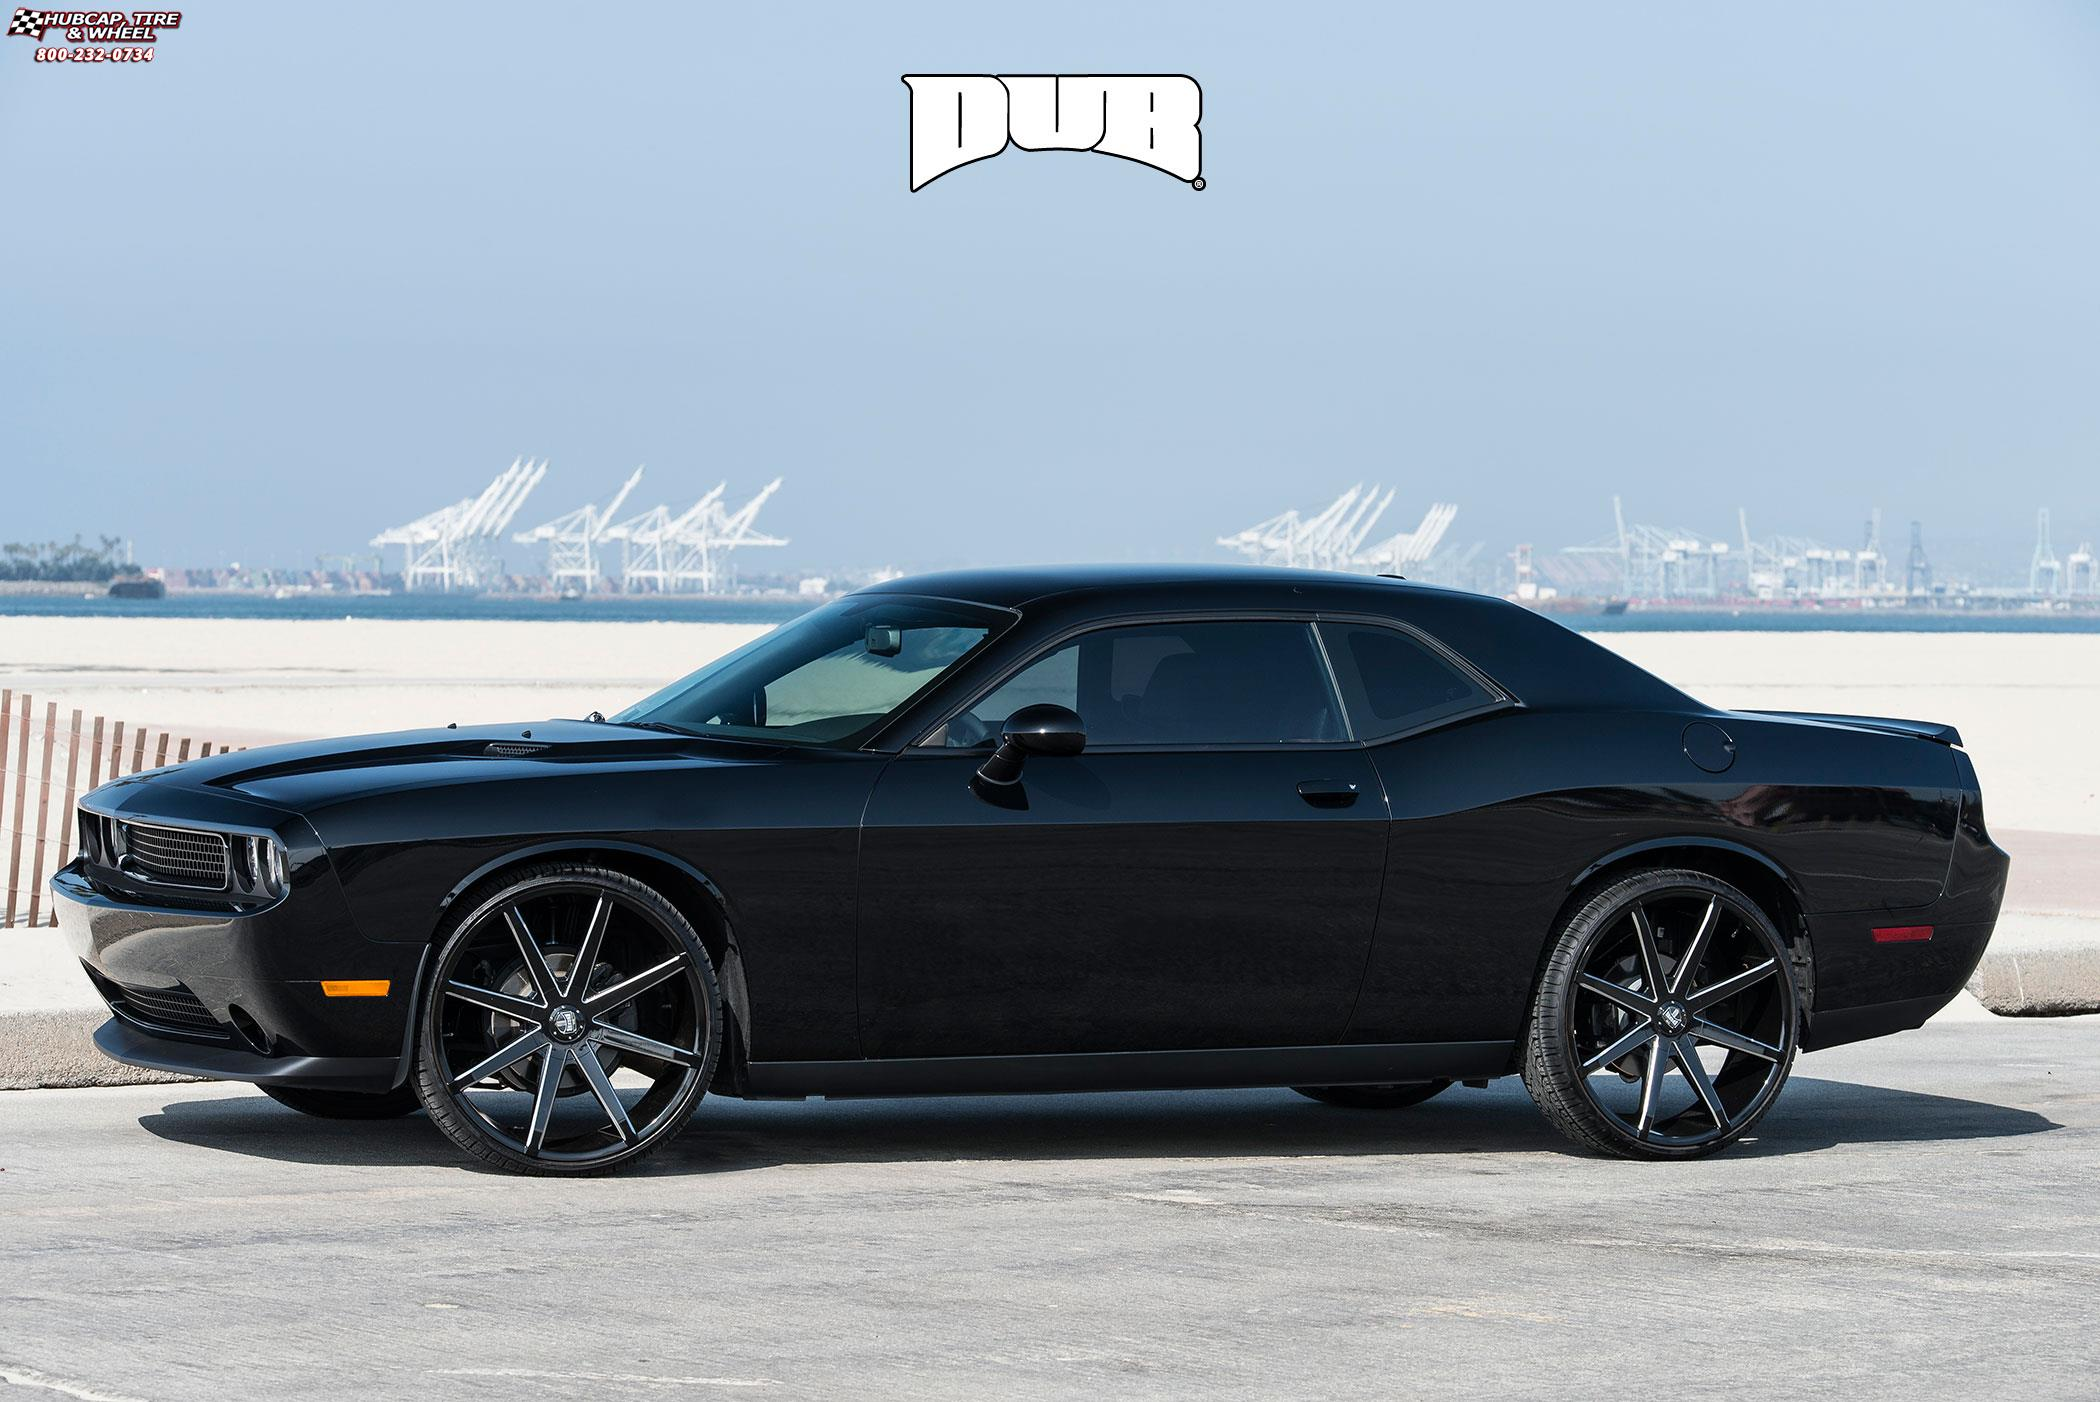 Dodge Challenger 24 Inch Rims >> Dodge Challenger Dub Push - S109 Wheels Gloss Black & Milled